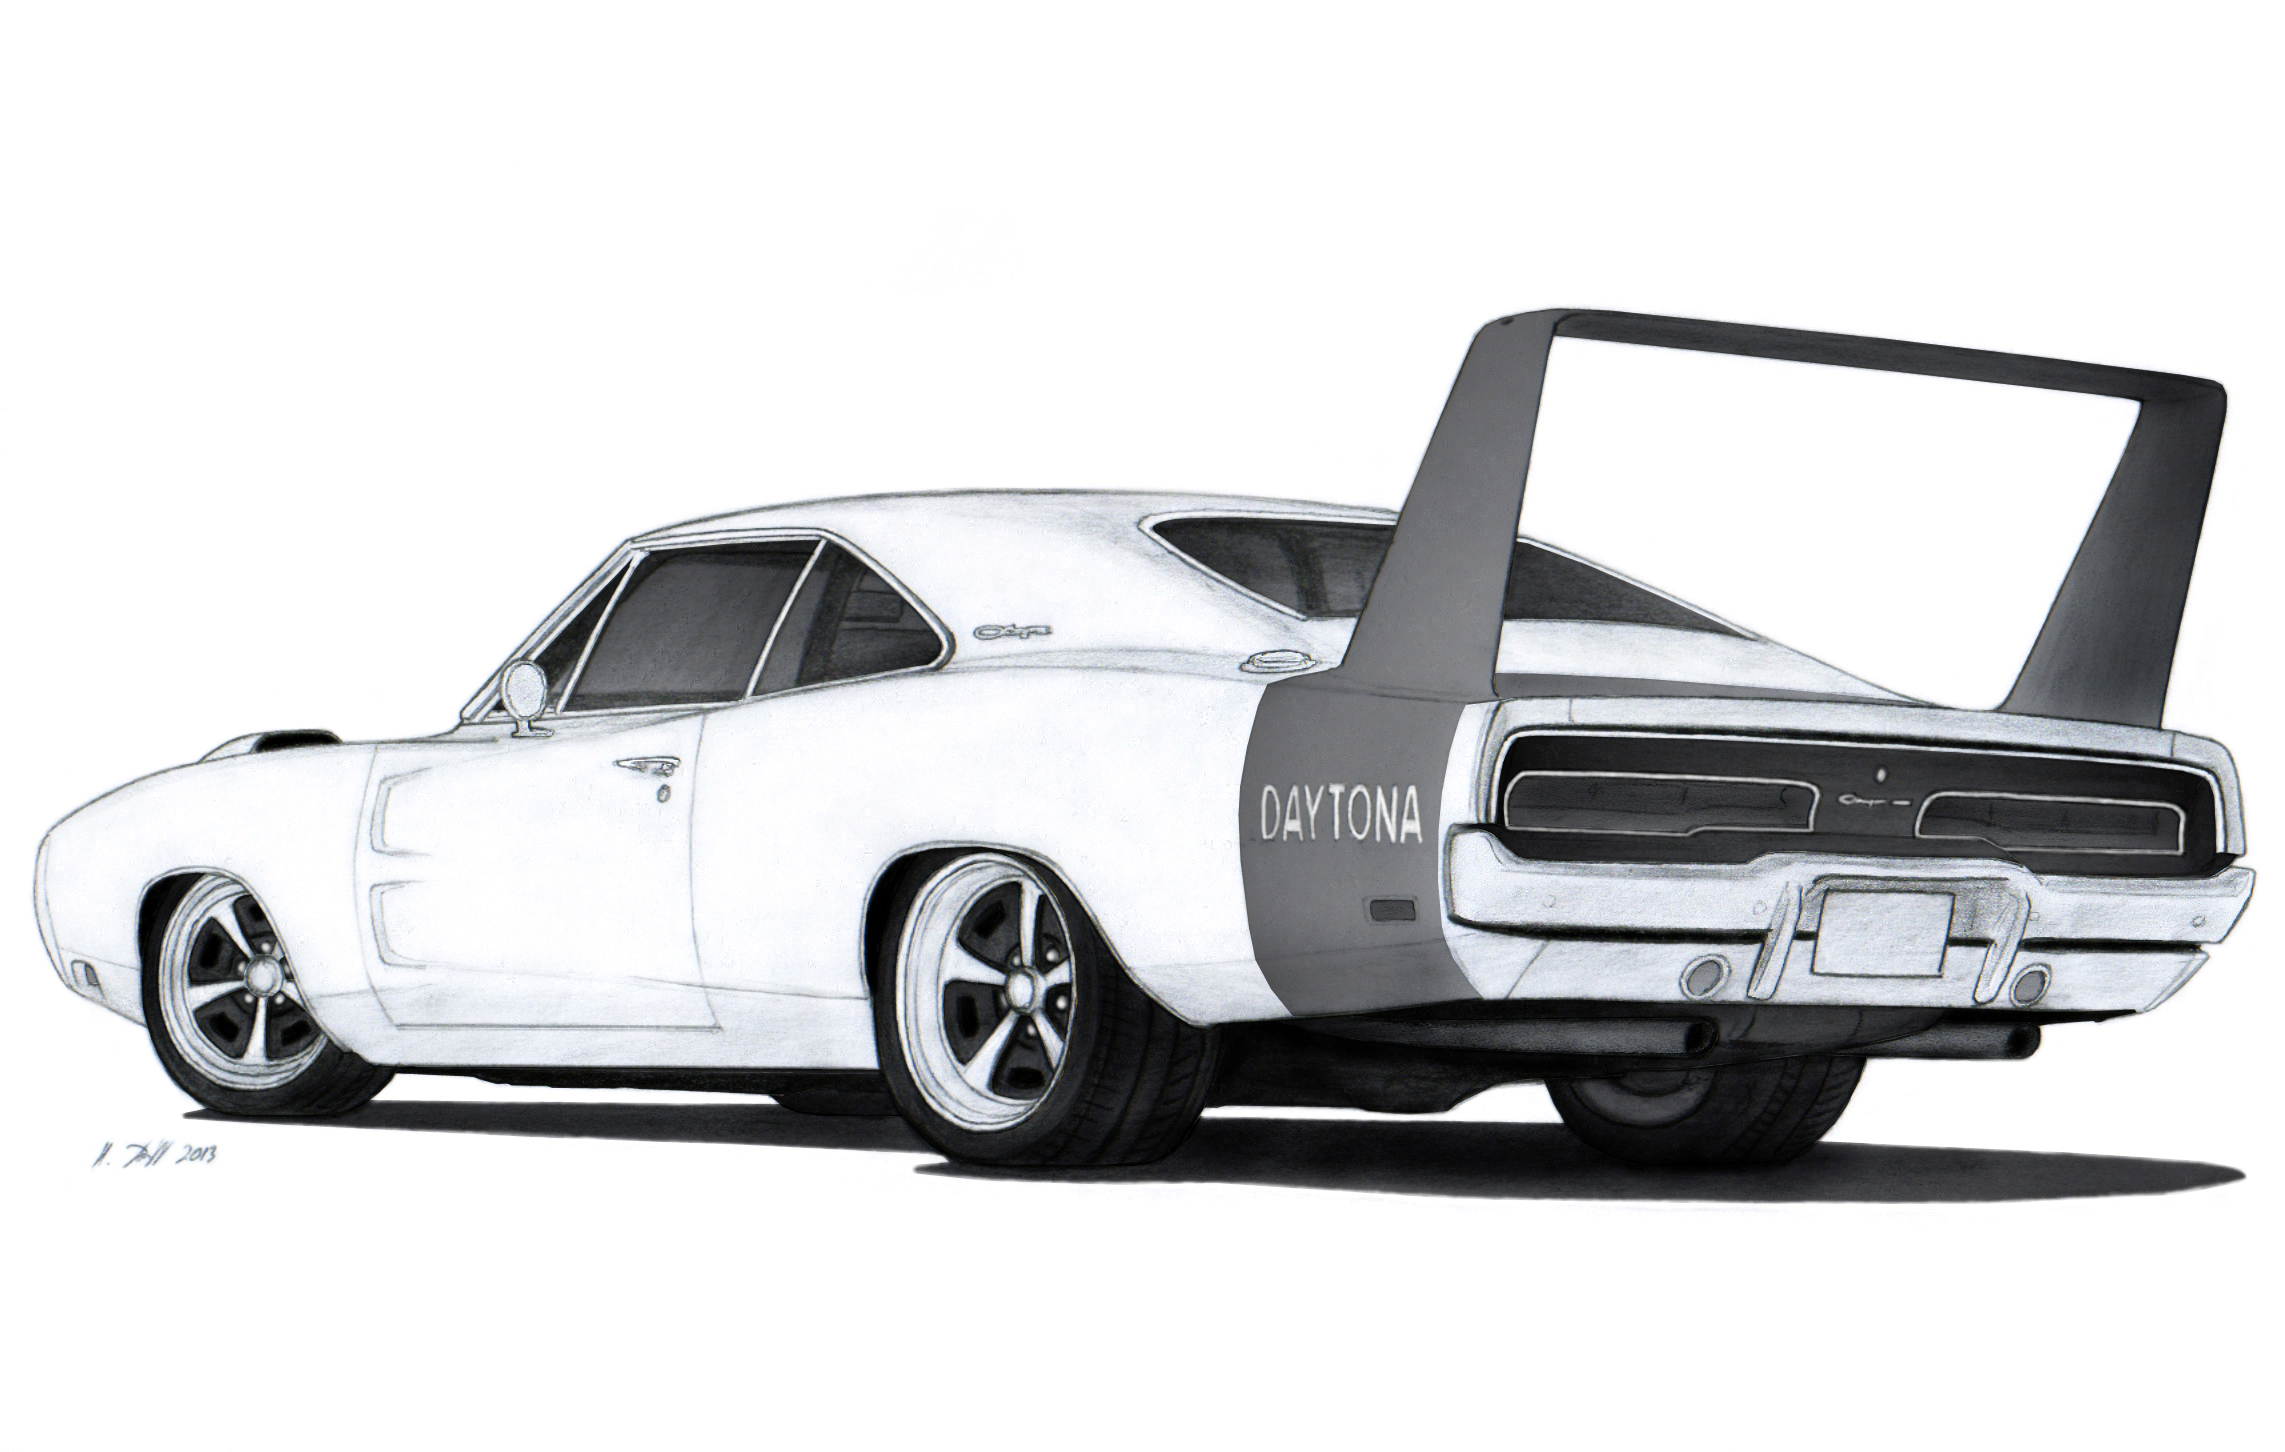 1969 Dodge Charger Daytona Drawing 415852270 on mustang with viper engine